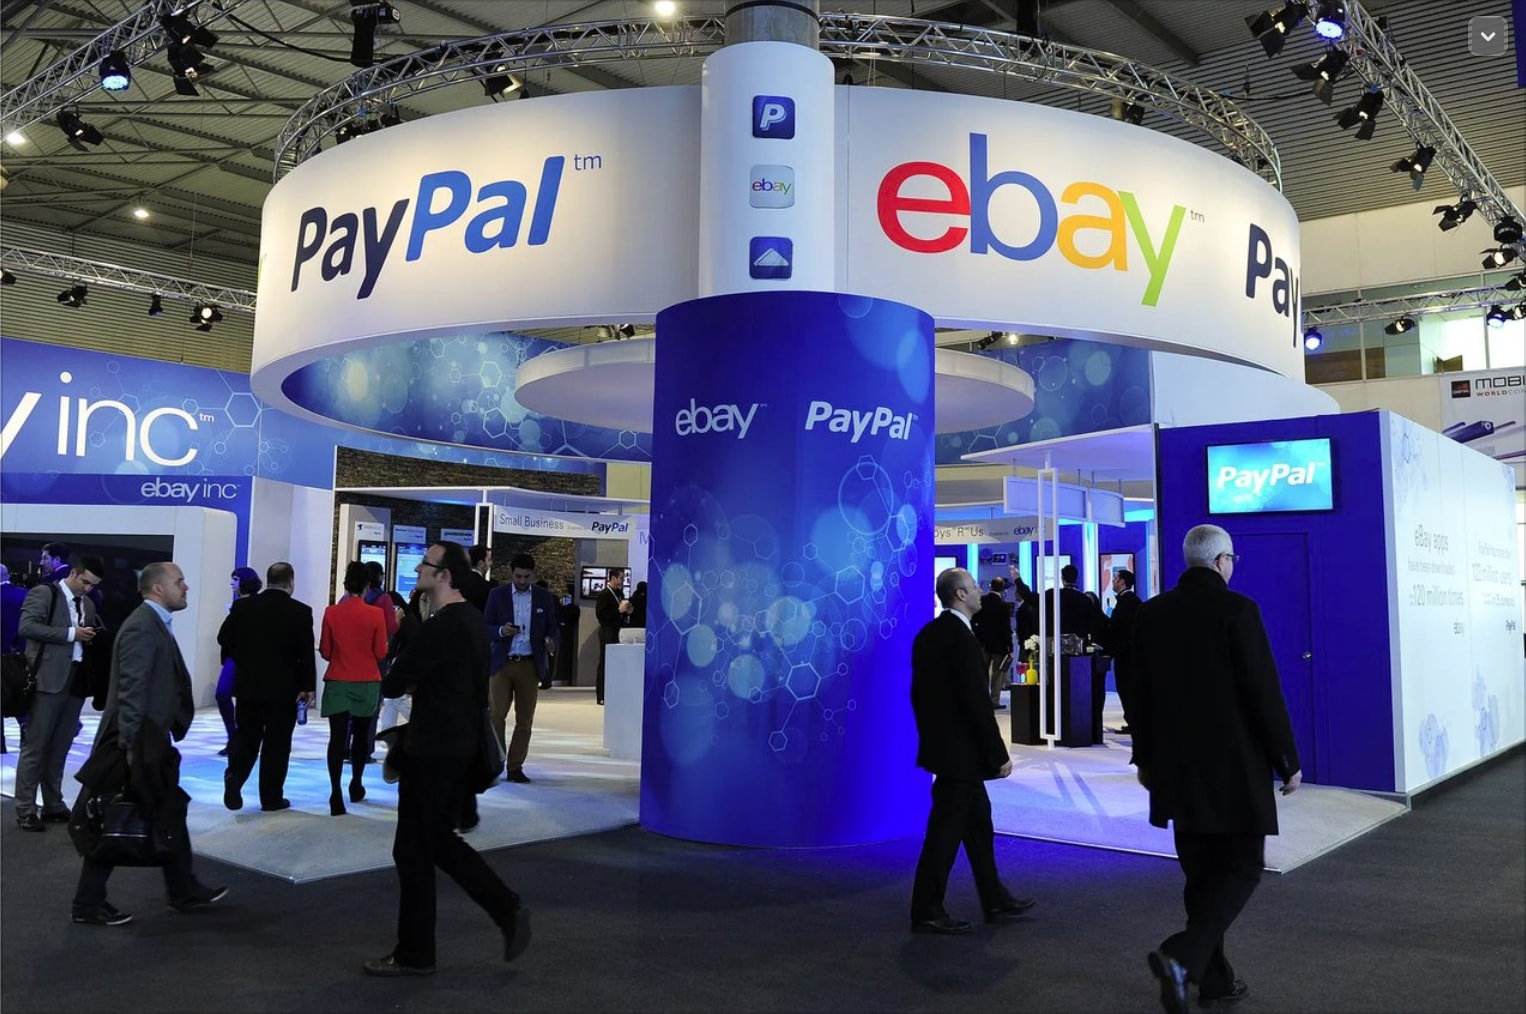 PayPal Booth at a Trade Show